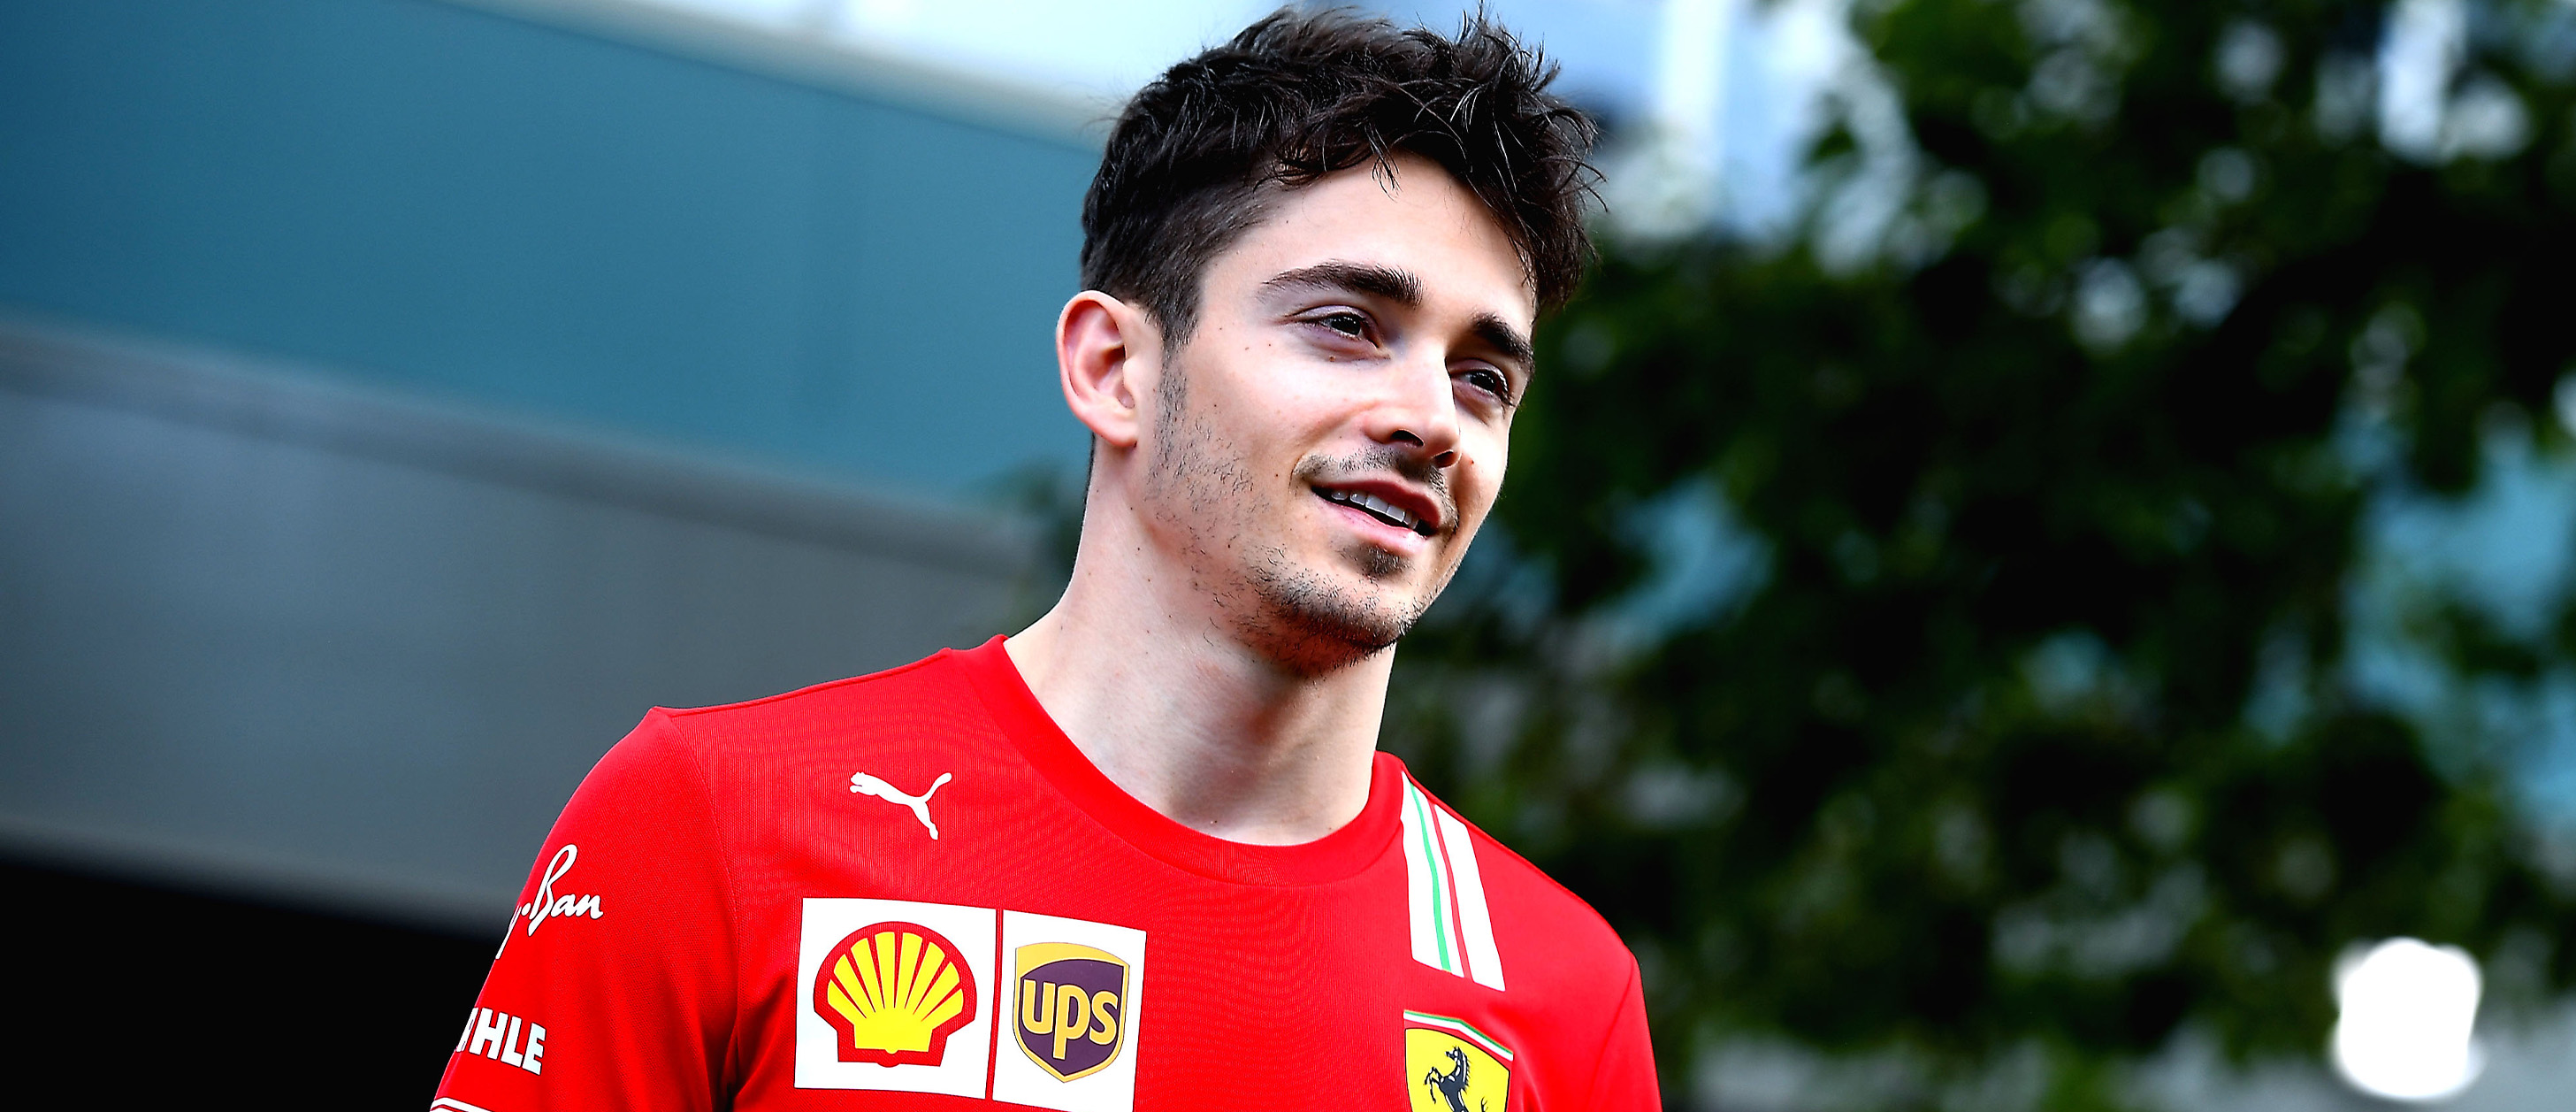 Charles Leclerc Dominates Second Virtual Grand Prix!